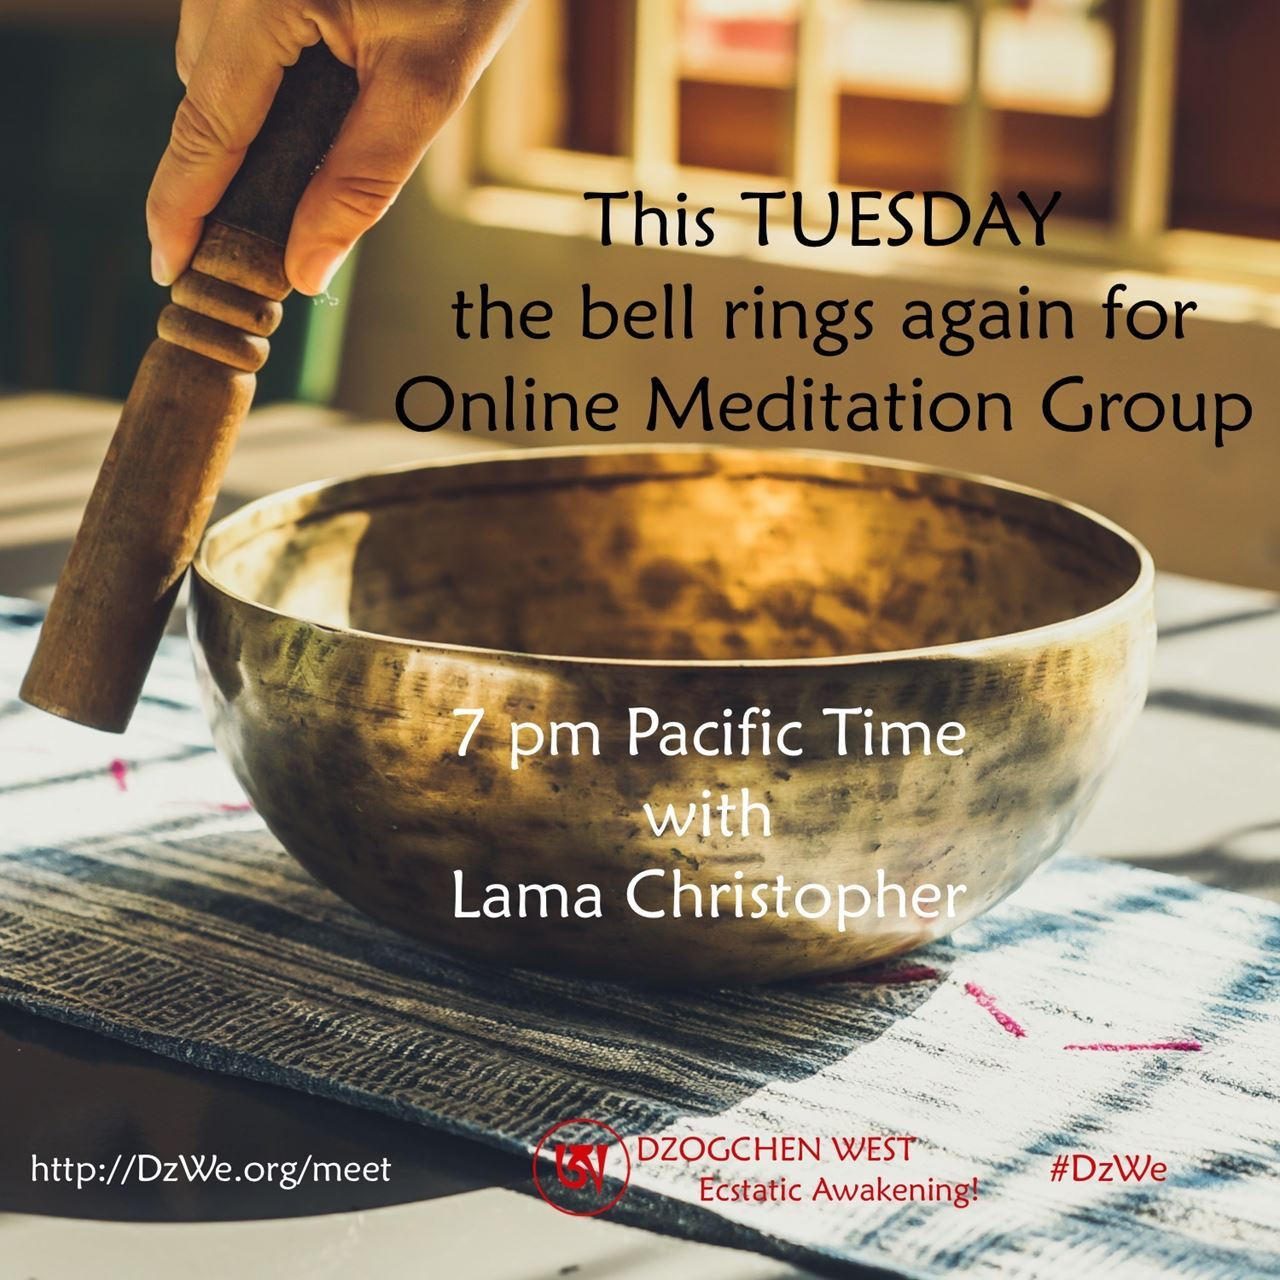 Online Meditation Group this TUESDAY